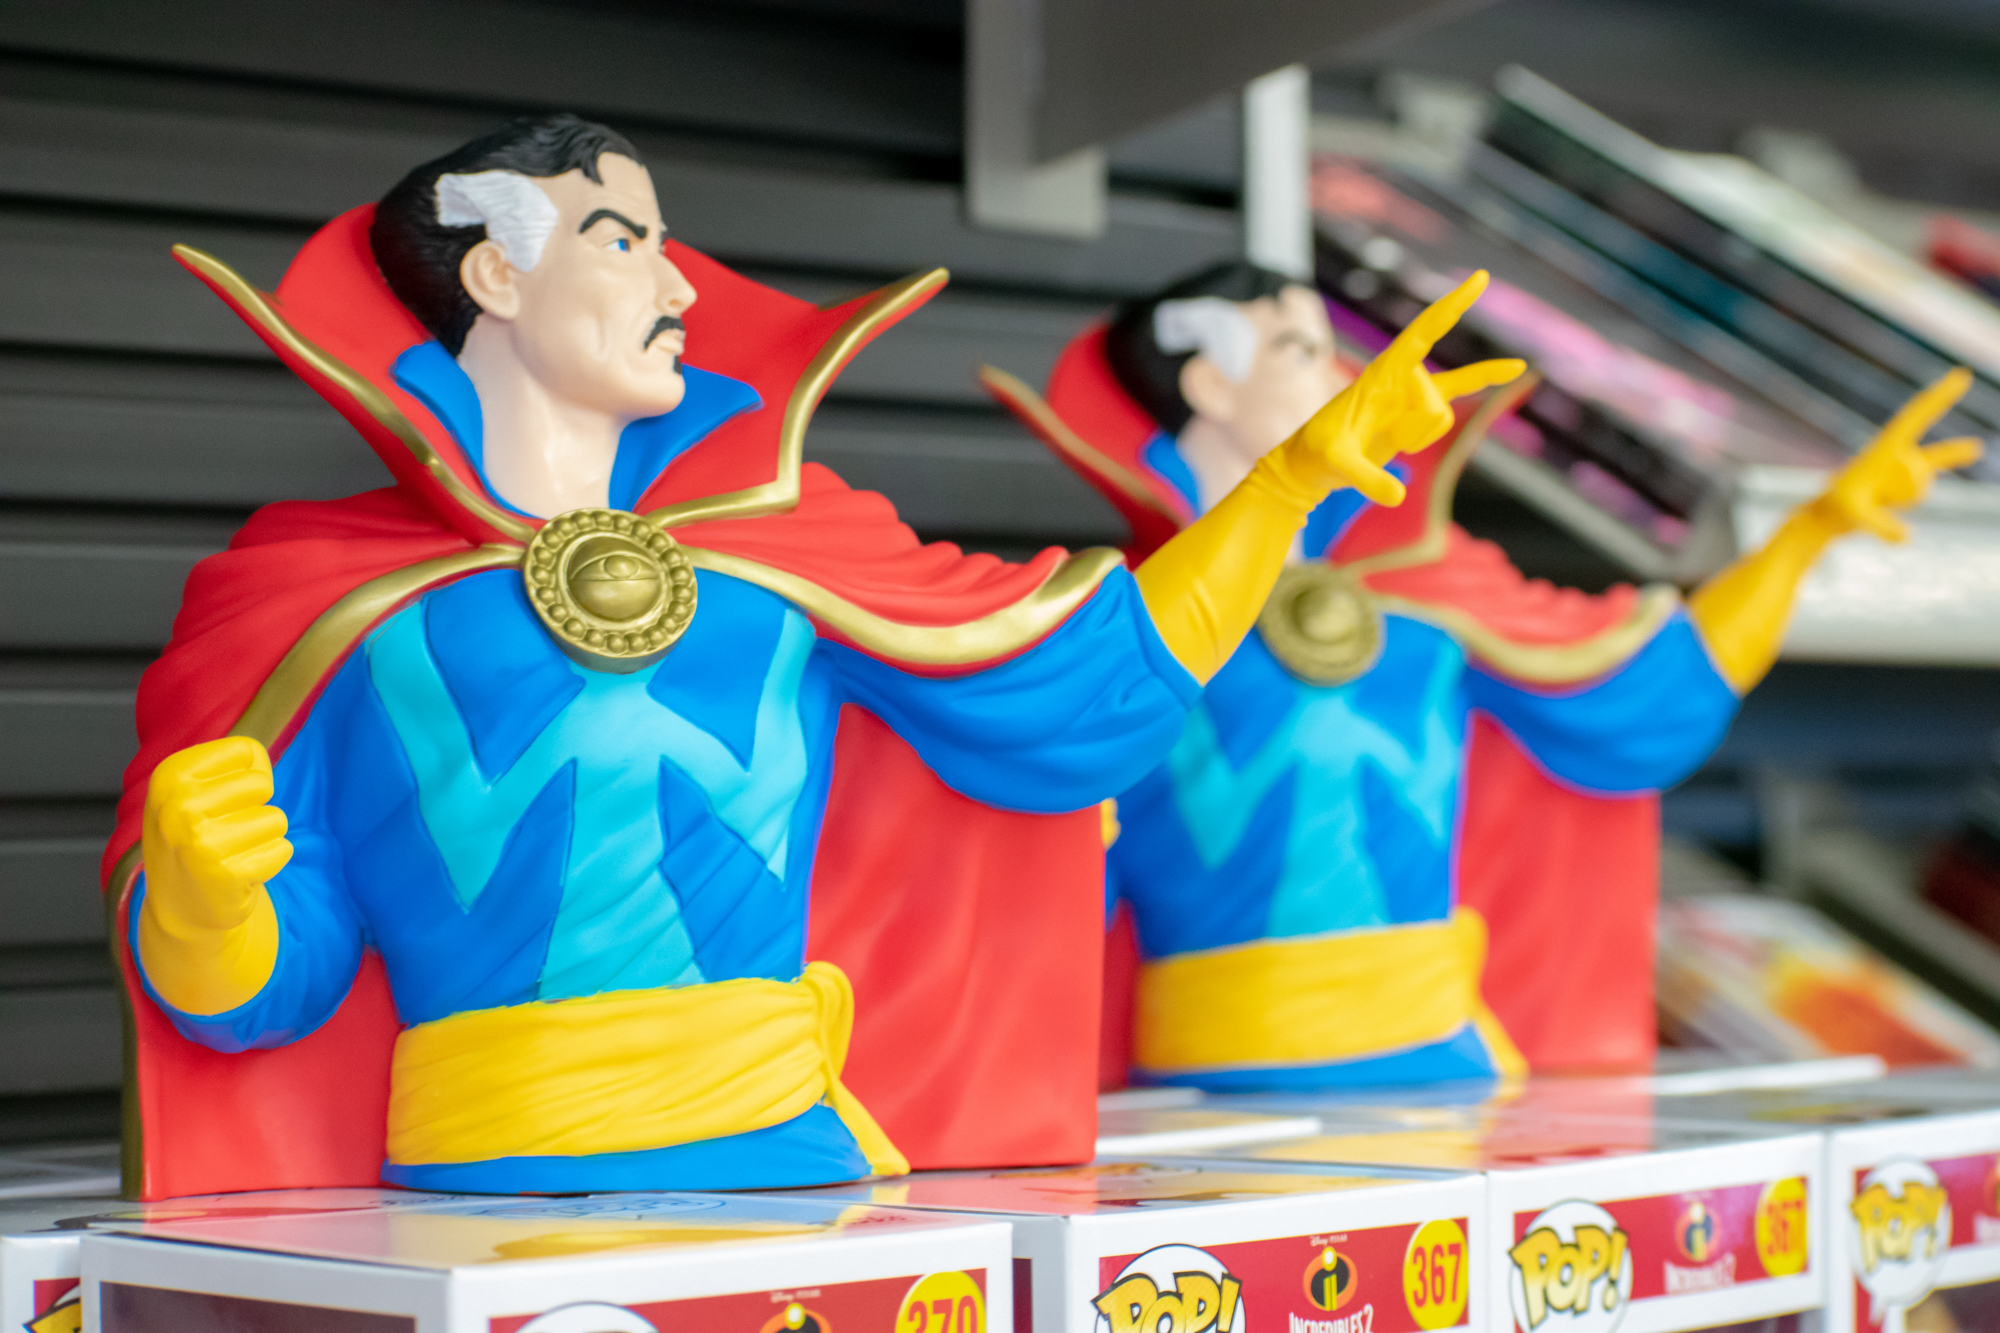 Comic book stores around the nation are getting ready for Saturday, May 5, which is Free Comic Book Day and stores such as Hi De Ho Comics in Santa Monica, California are getting ready to hand out free comics to people who enter. (Ethan Lauren/Corsair Photo)